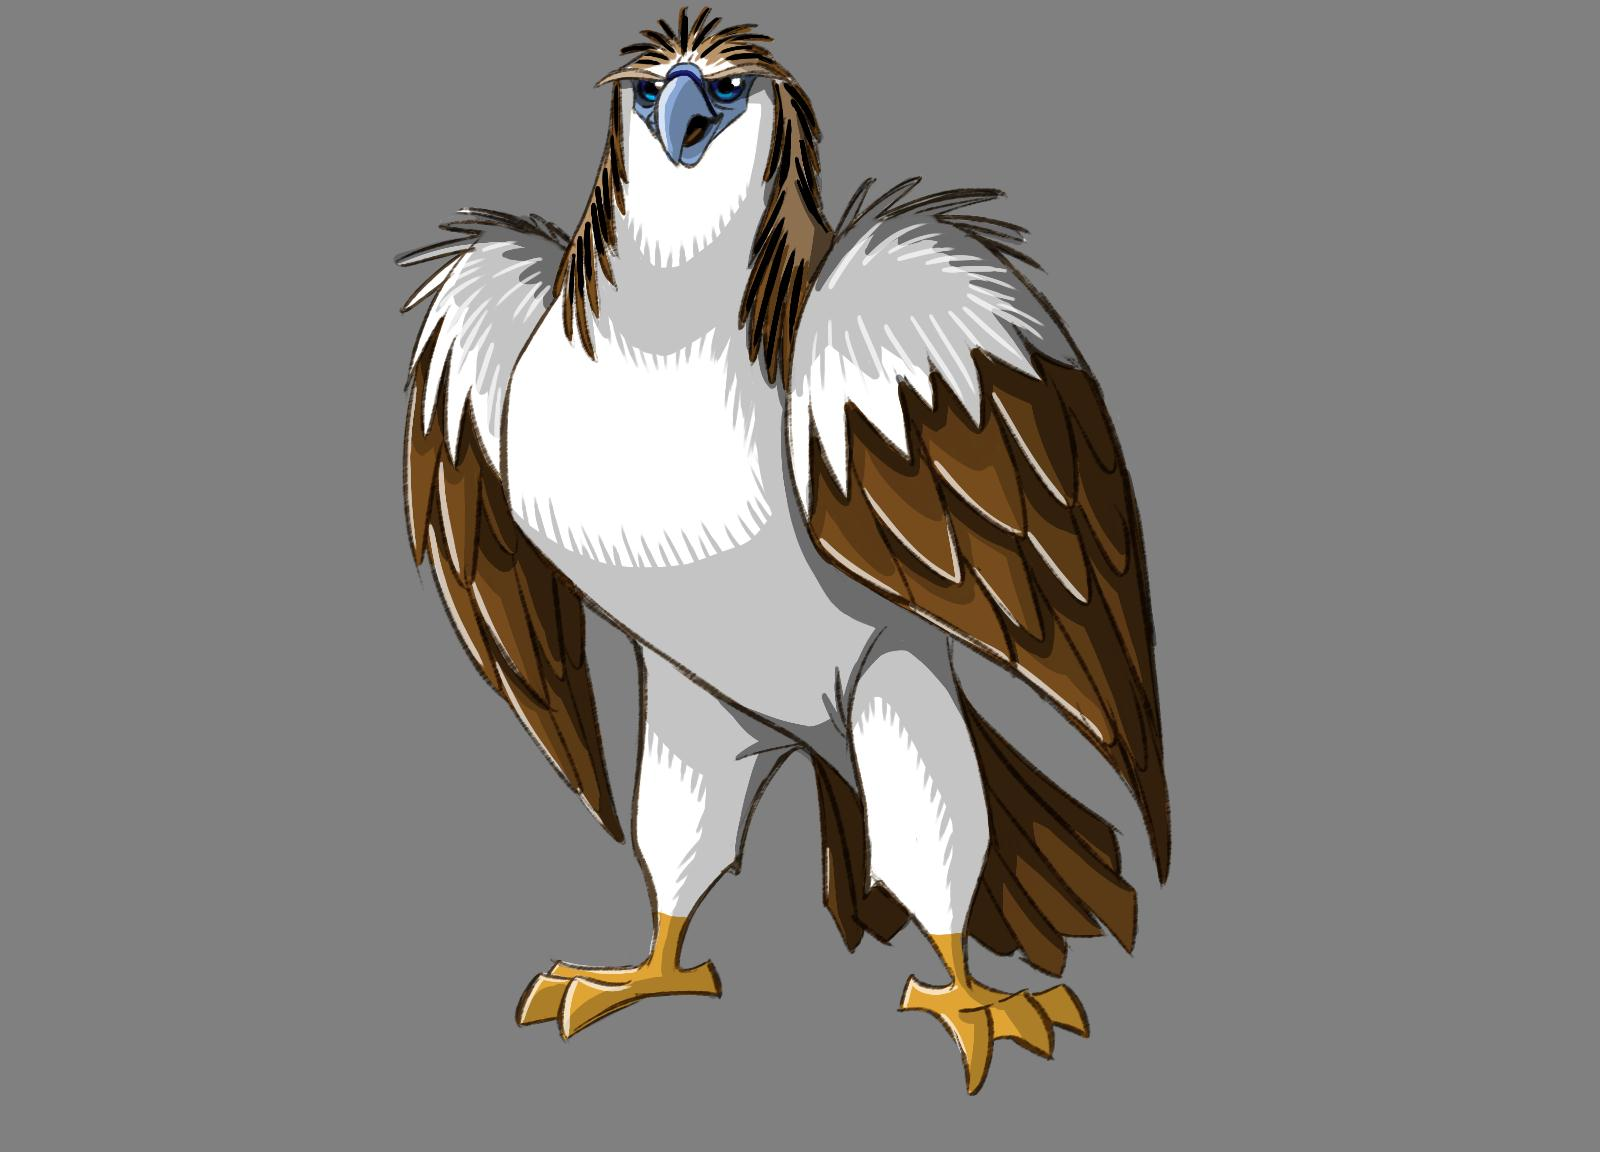 joma santiago  eagle and owl character designs